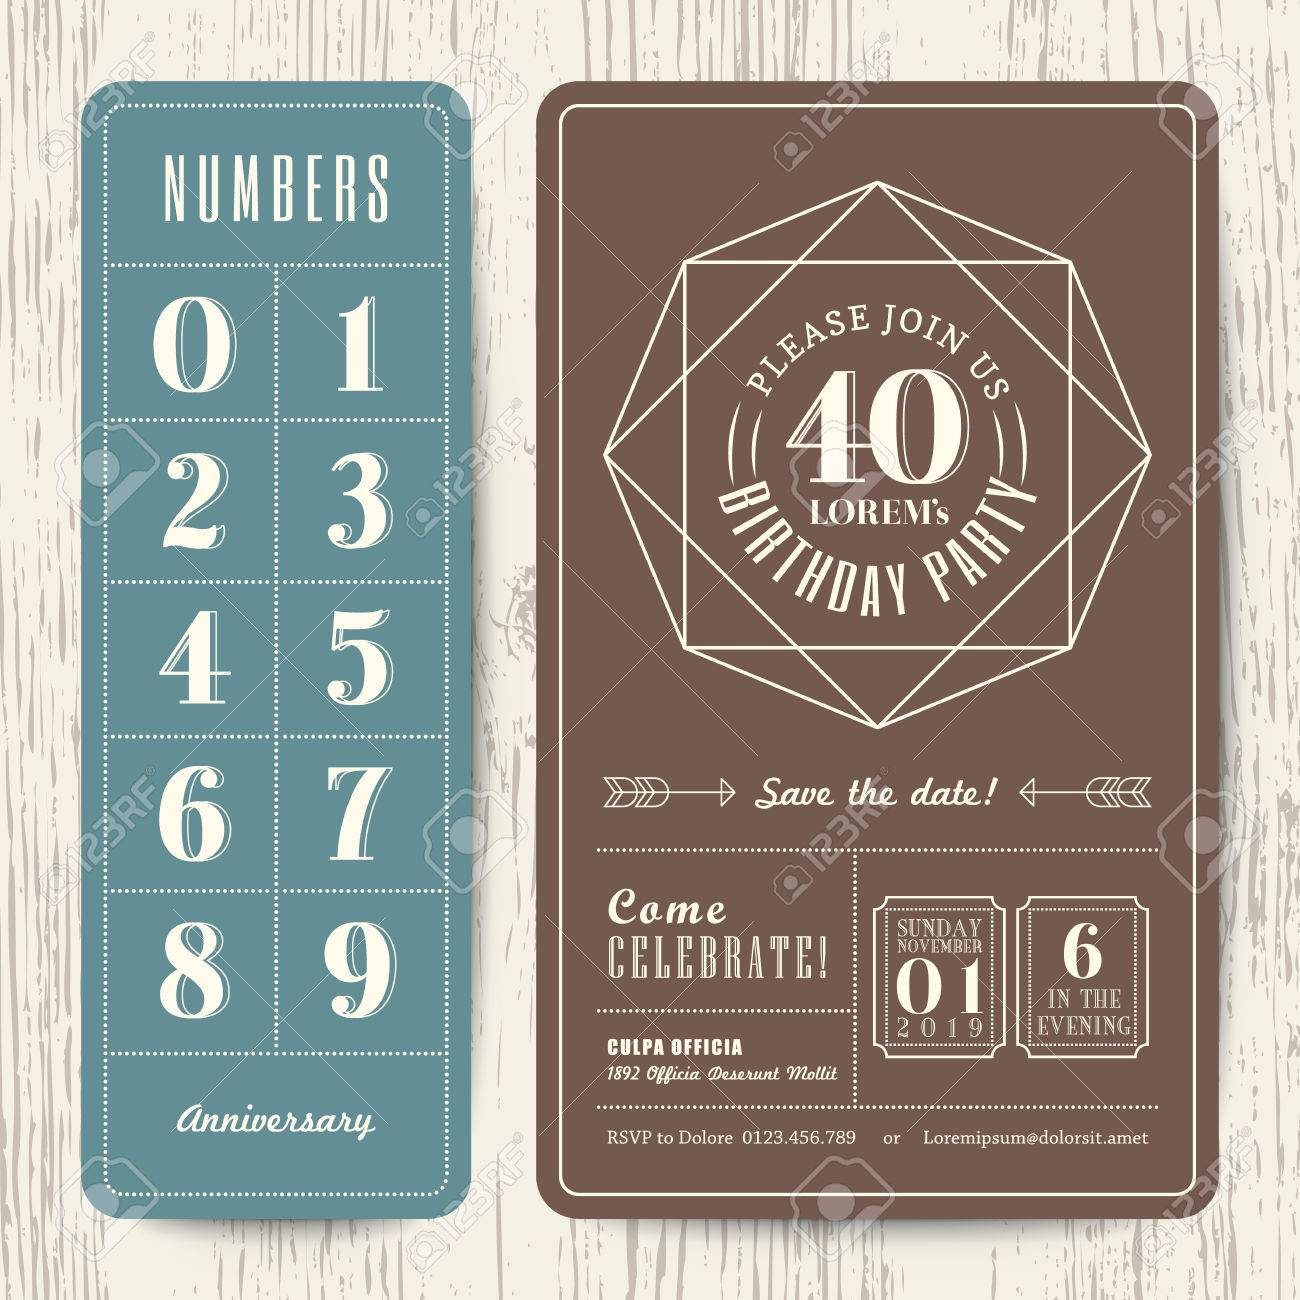 Retro birthday party invitation card with editable numbers template retro birthday party invitation card with editable numbers template stock vector 38898660 filmwisefo